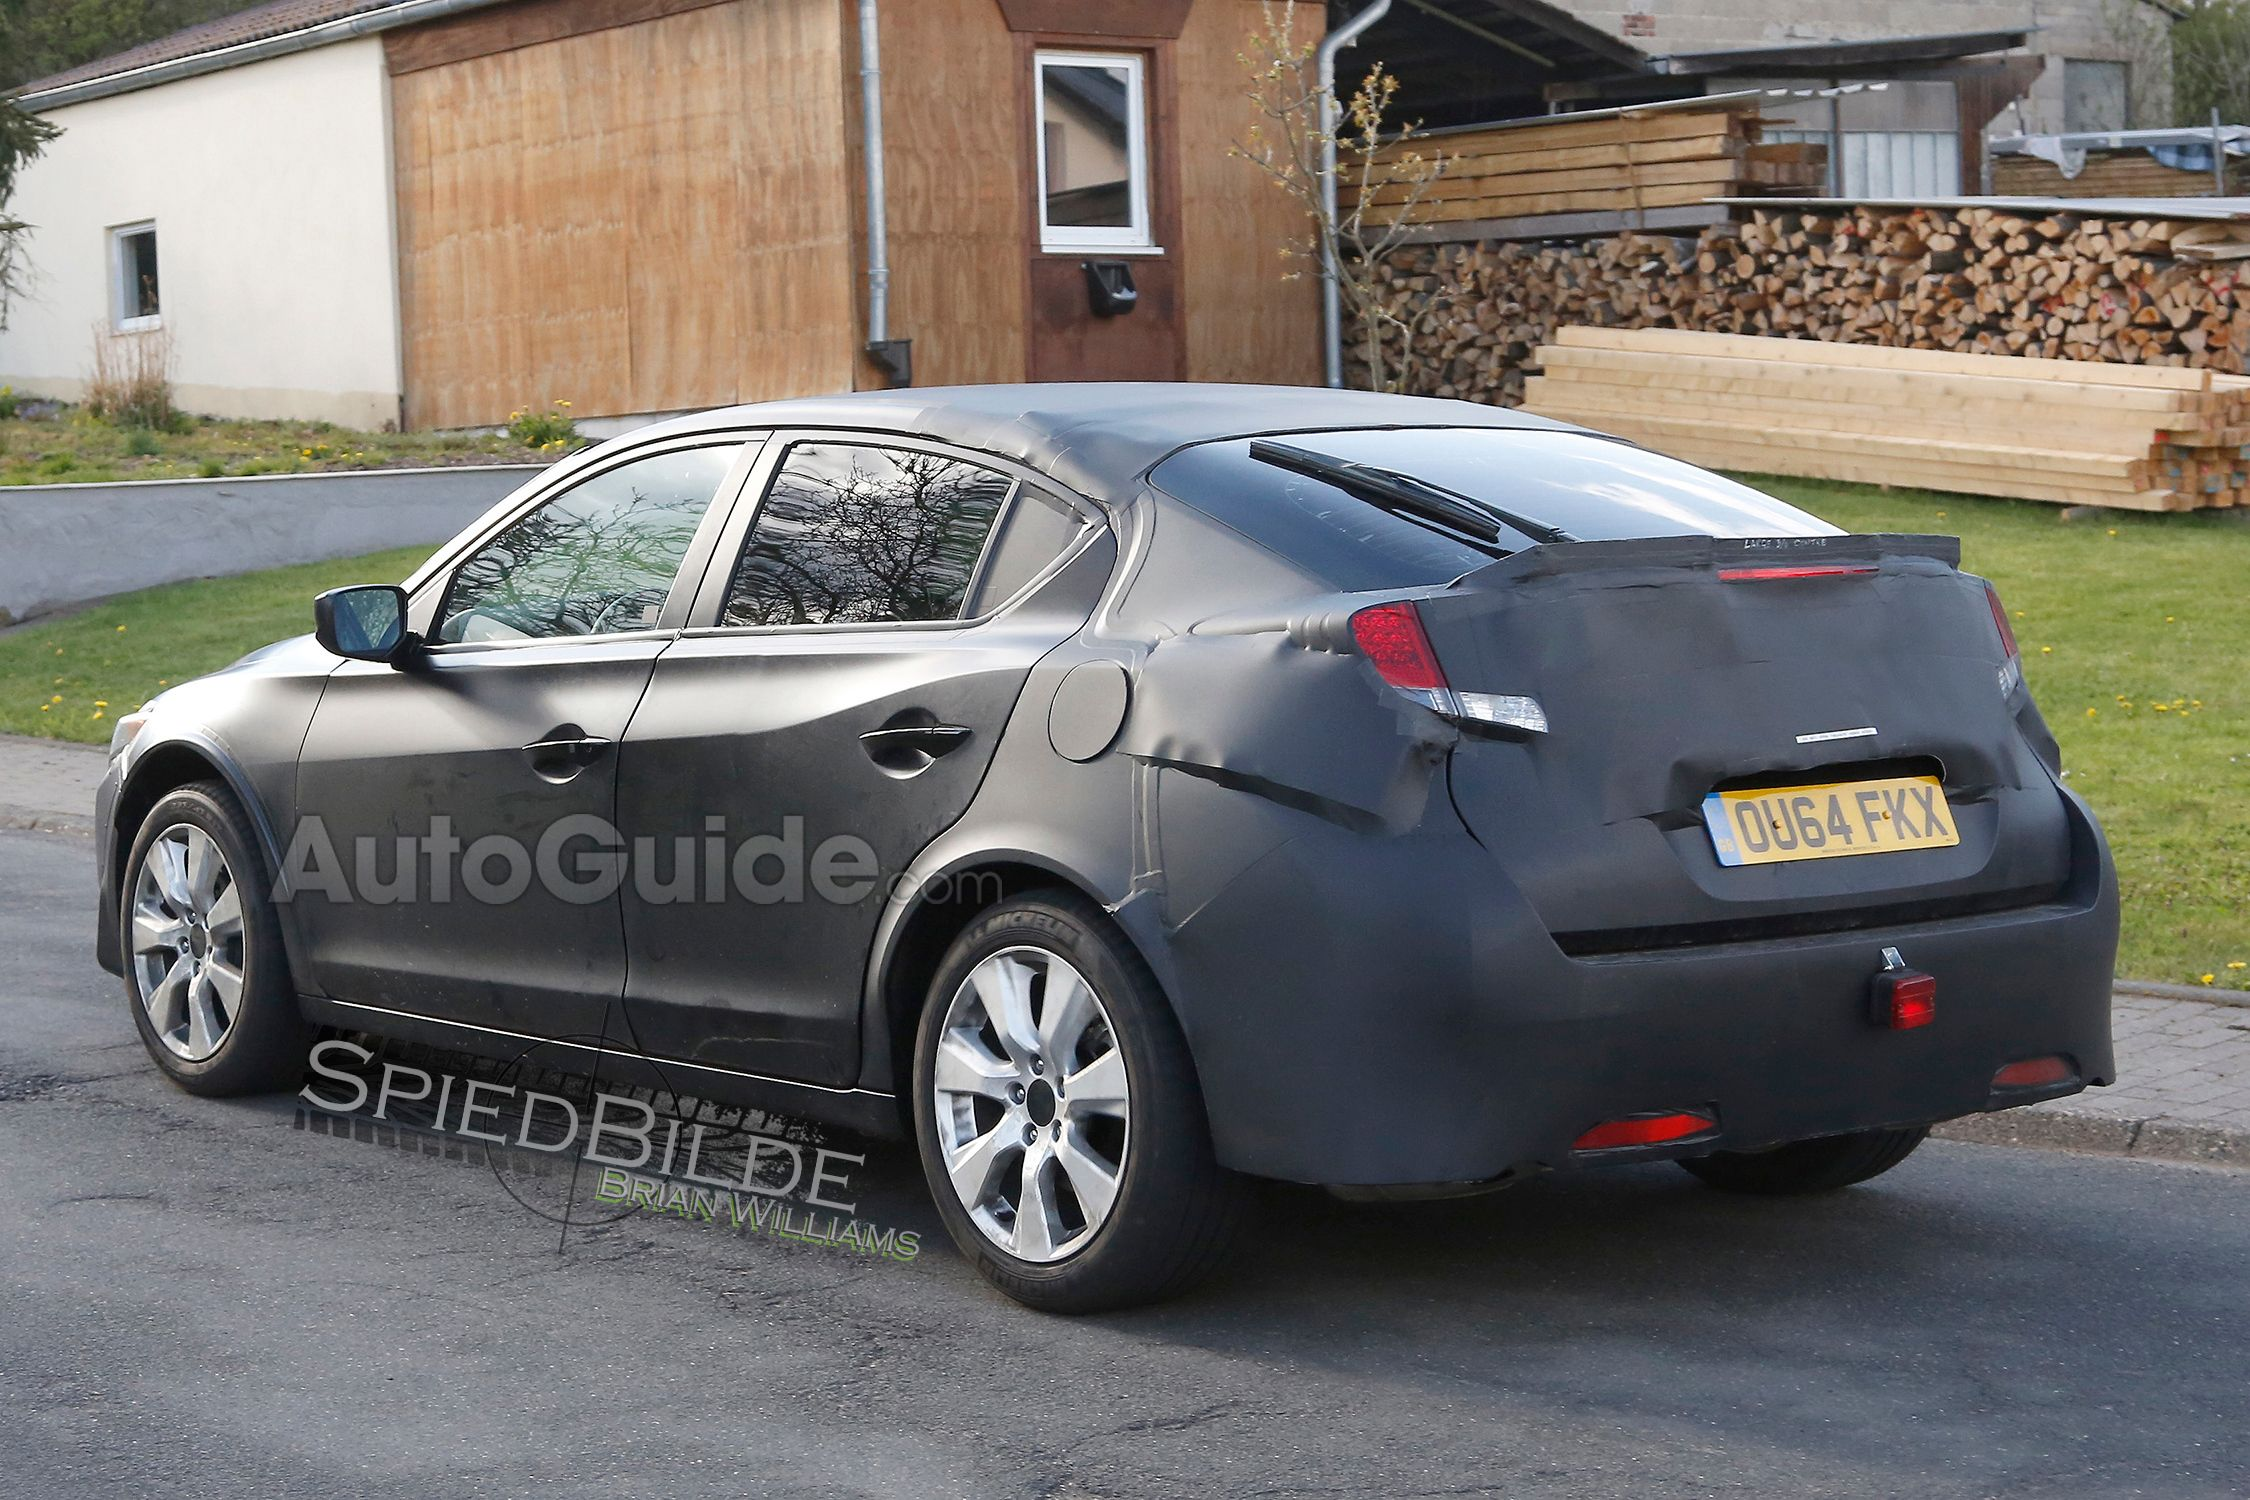 New spy photos are in showing the upcoming honda civic this honda civic hatchback mule was spotted on the streets of germany wearing british